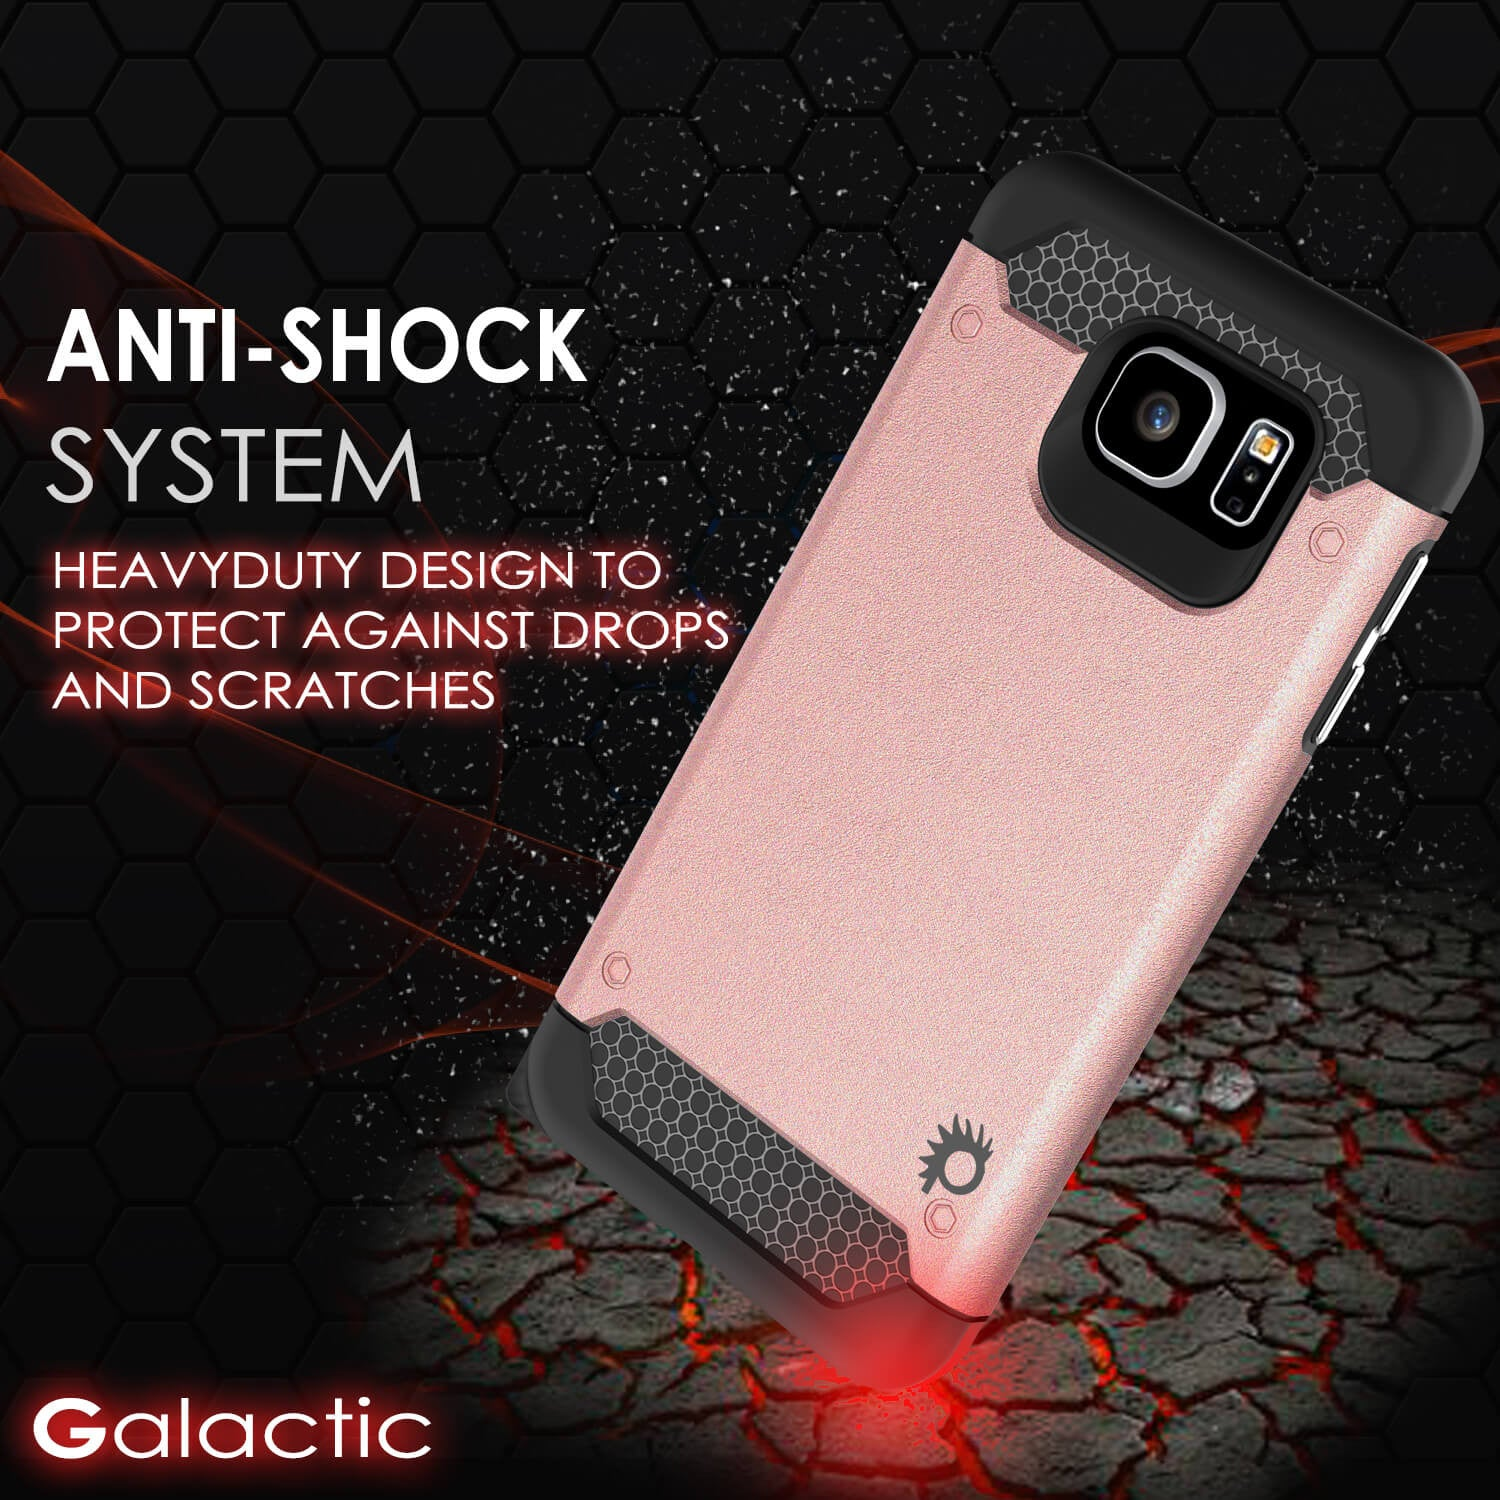 Galaxy s6 Case PunkCase Galactic Rose Gold Series Slim Armor Soft Cover Case w/ Tempered Glass